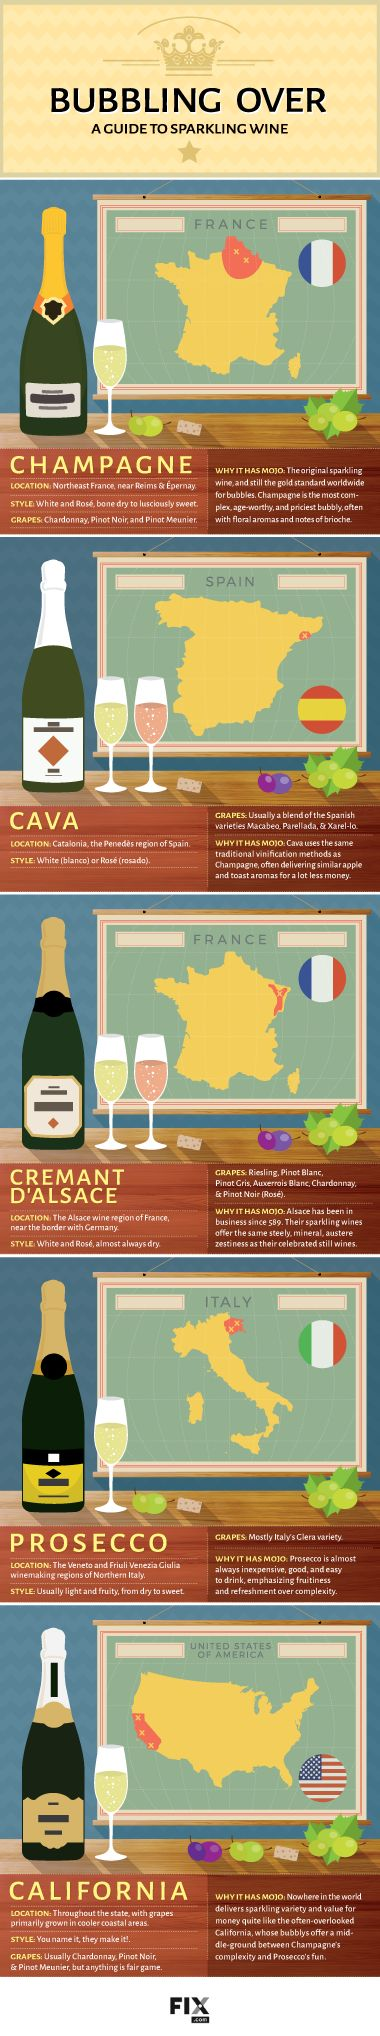 A Guide to Sparkling Wine